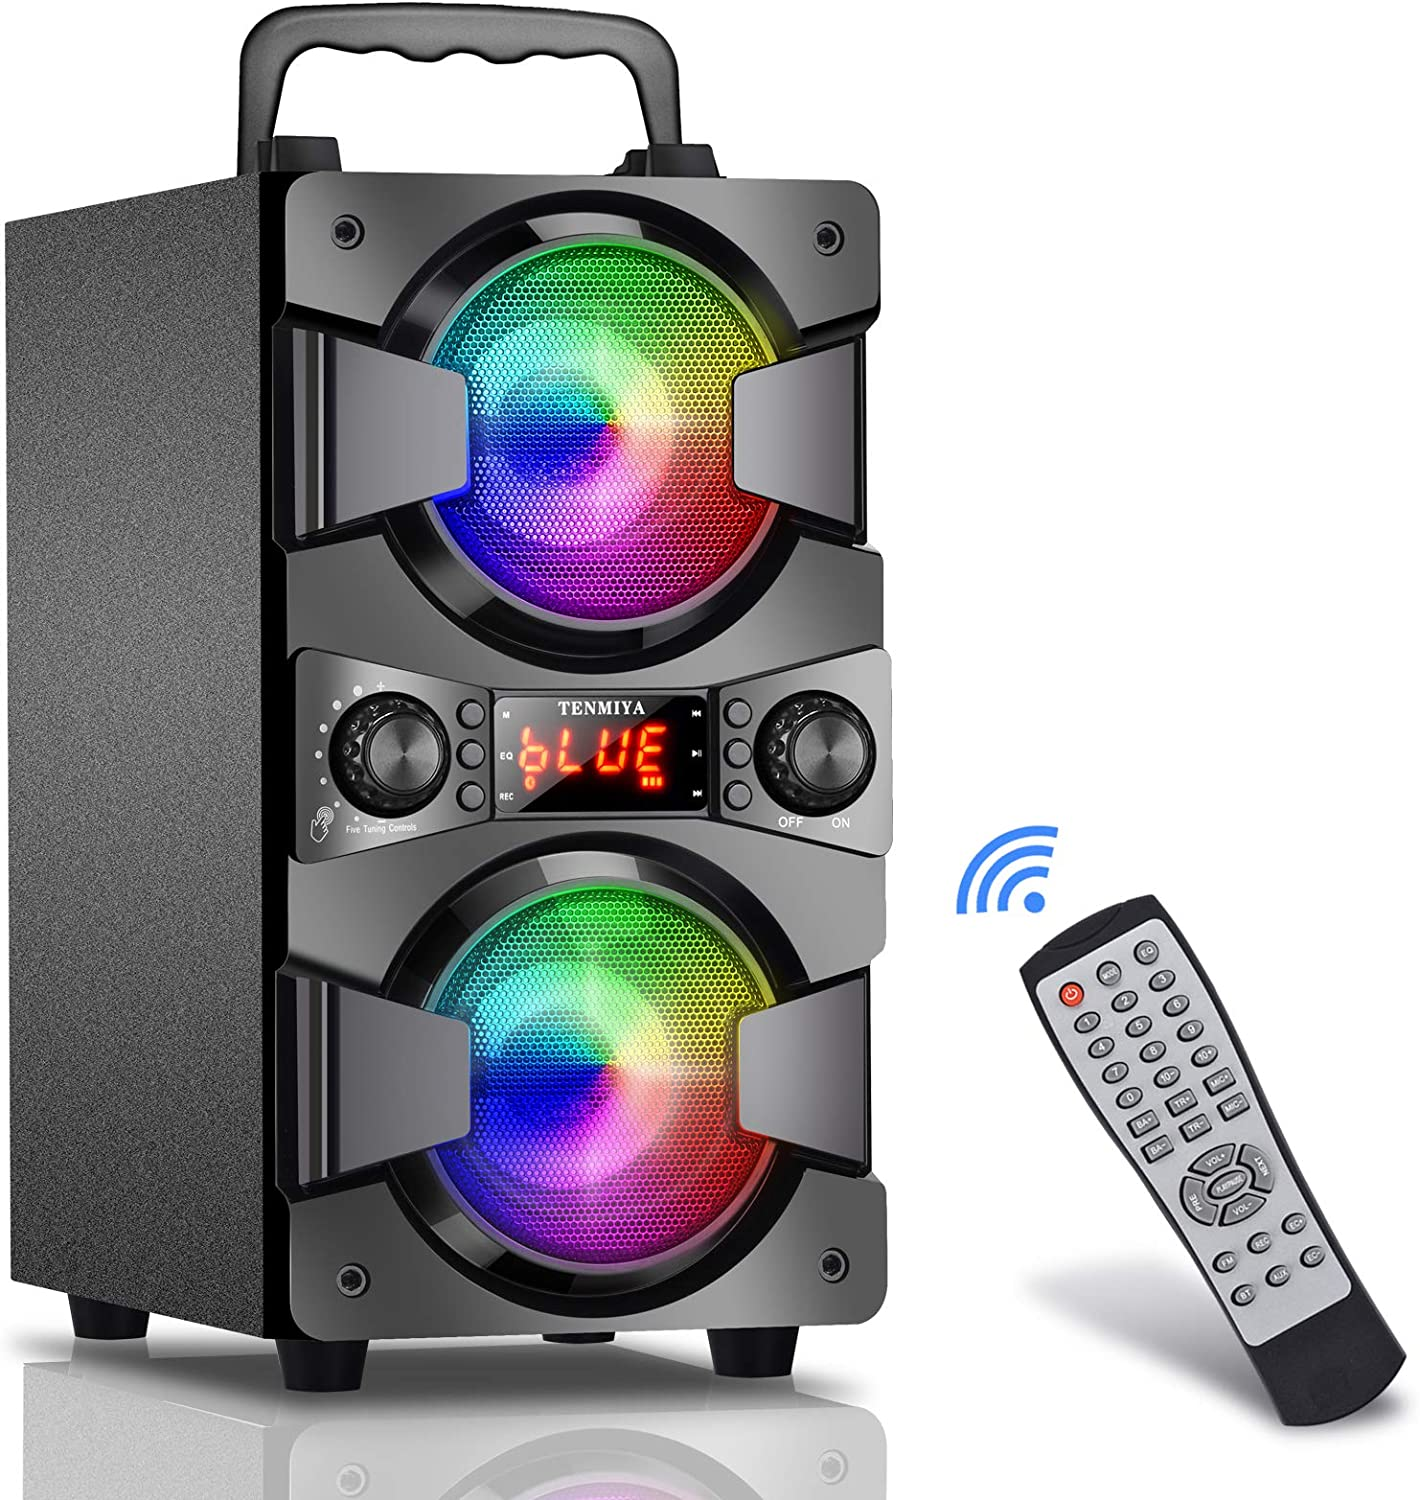 Bluetooth Speaker, 60W (80W Peak) Portable Wireless Speaker with Lights, Double Subwoofer Heavy Bass, FM Radio, MP3 Player, Microphone, Remote, Rich Stereo, Loud Speaker for Home Outdoor Party Camping